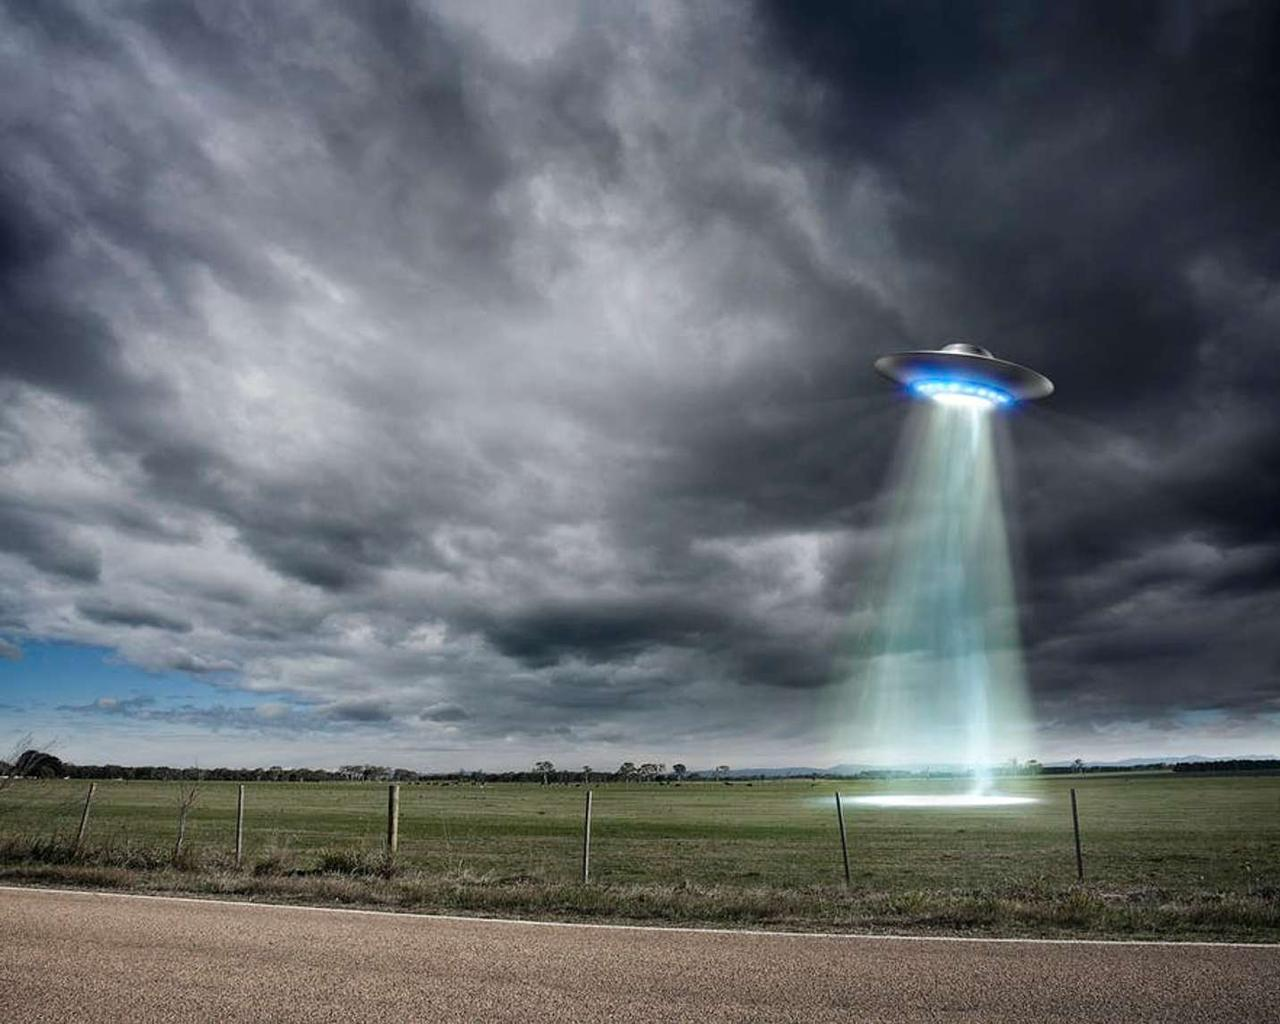 Pentagon confirms leaked photos and video of UFOs are legitimate.